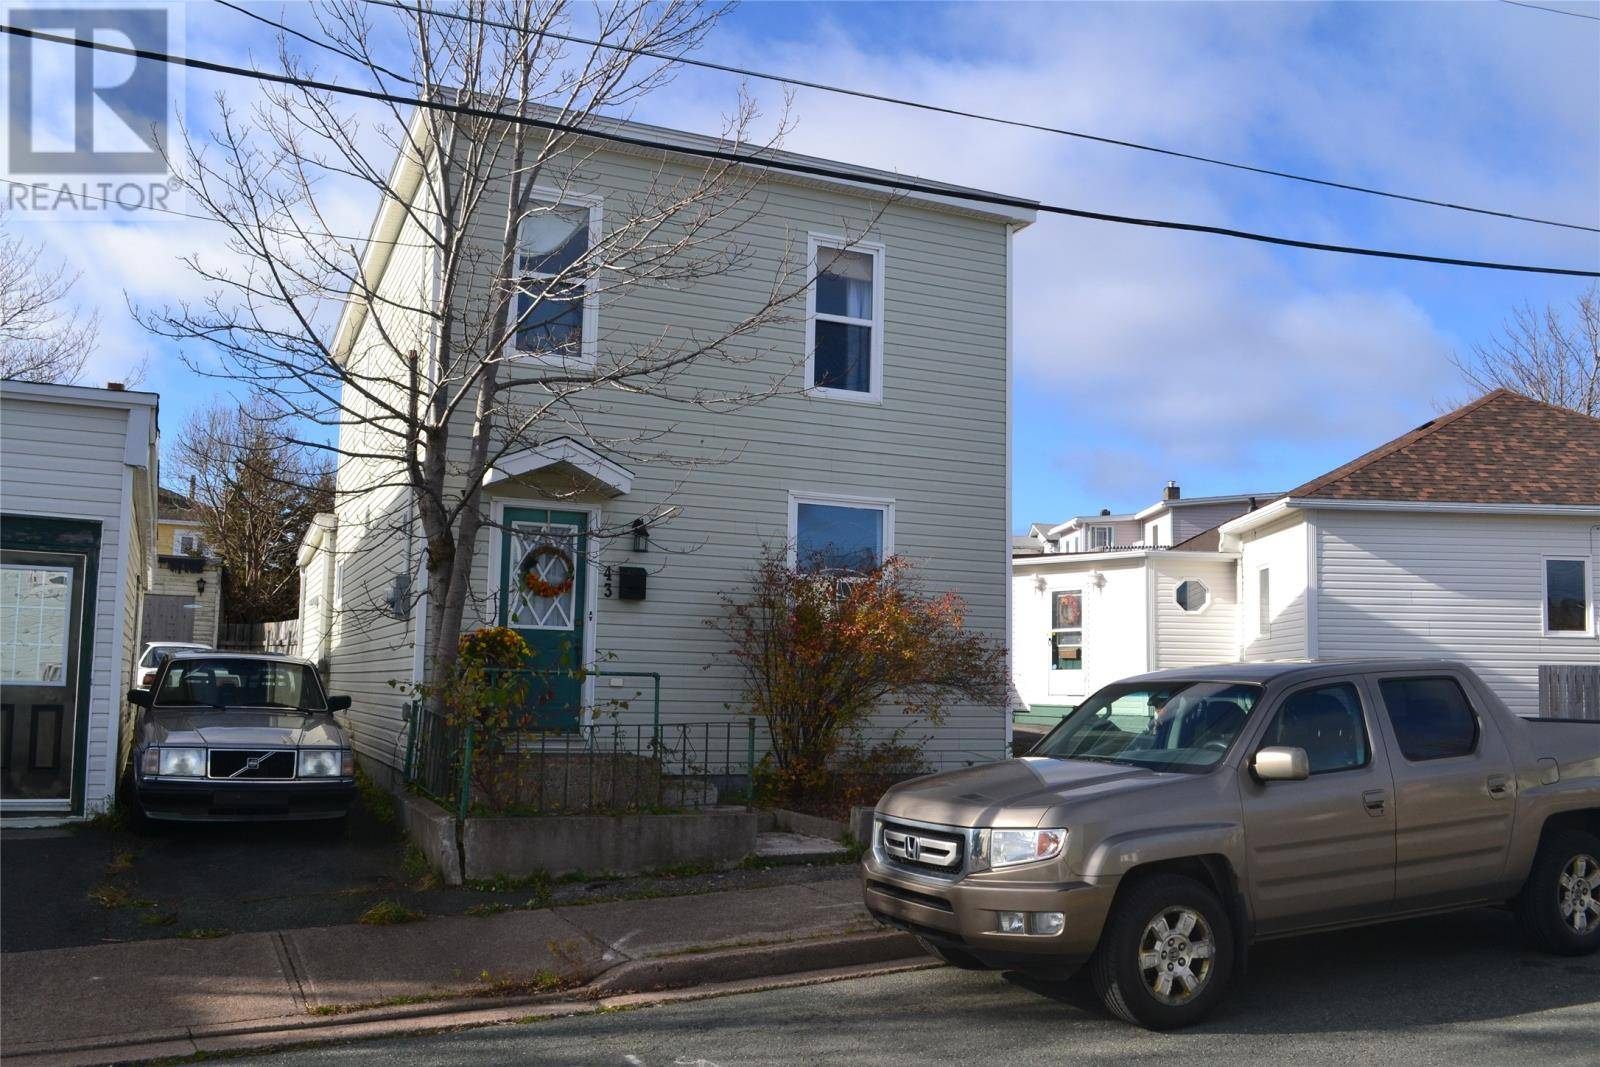 House for sale at 43 Mount Royal Ave St. John's Newfoundland - MLS: 1210035